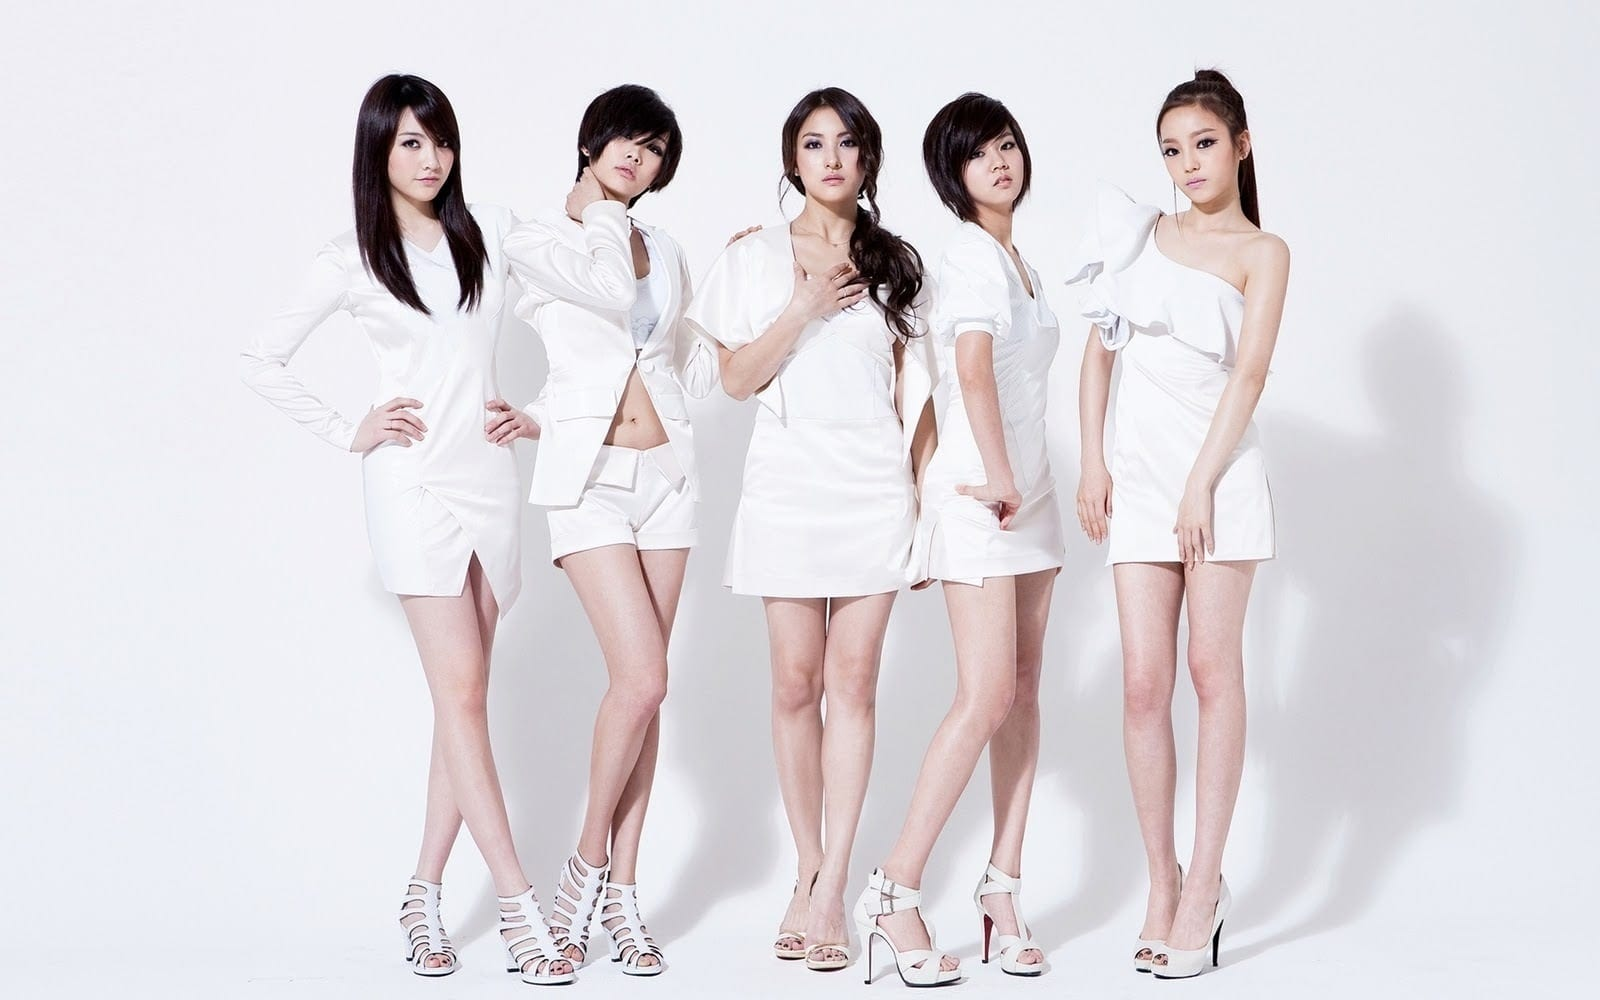 Kpop Group: Is Stick Skinny Not A Trend Anymore? #gg